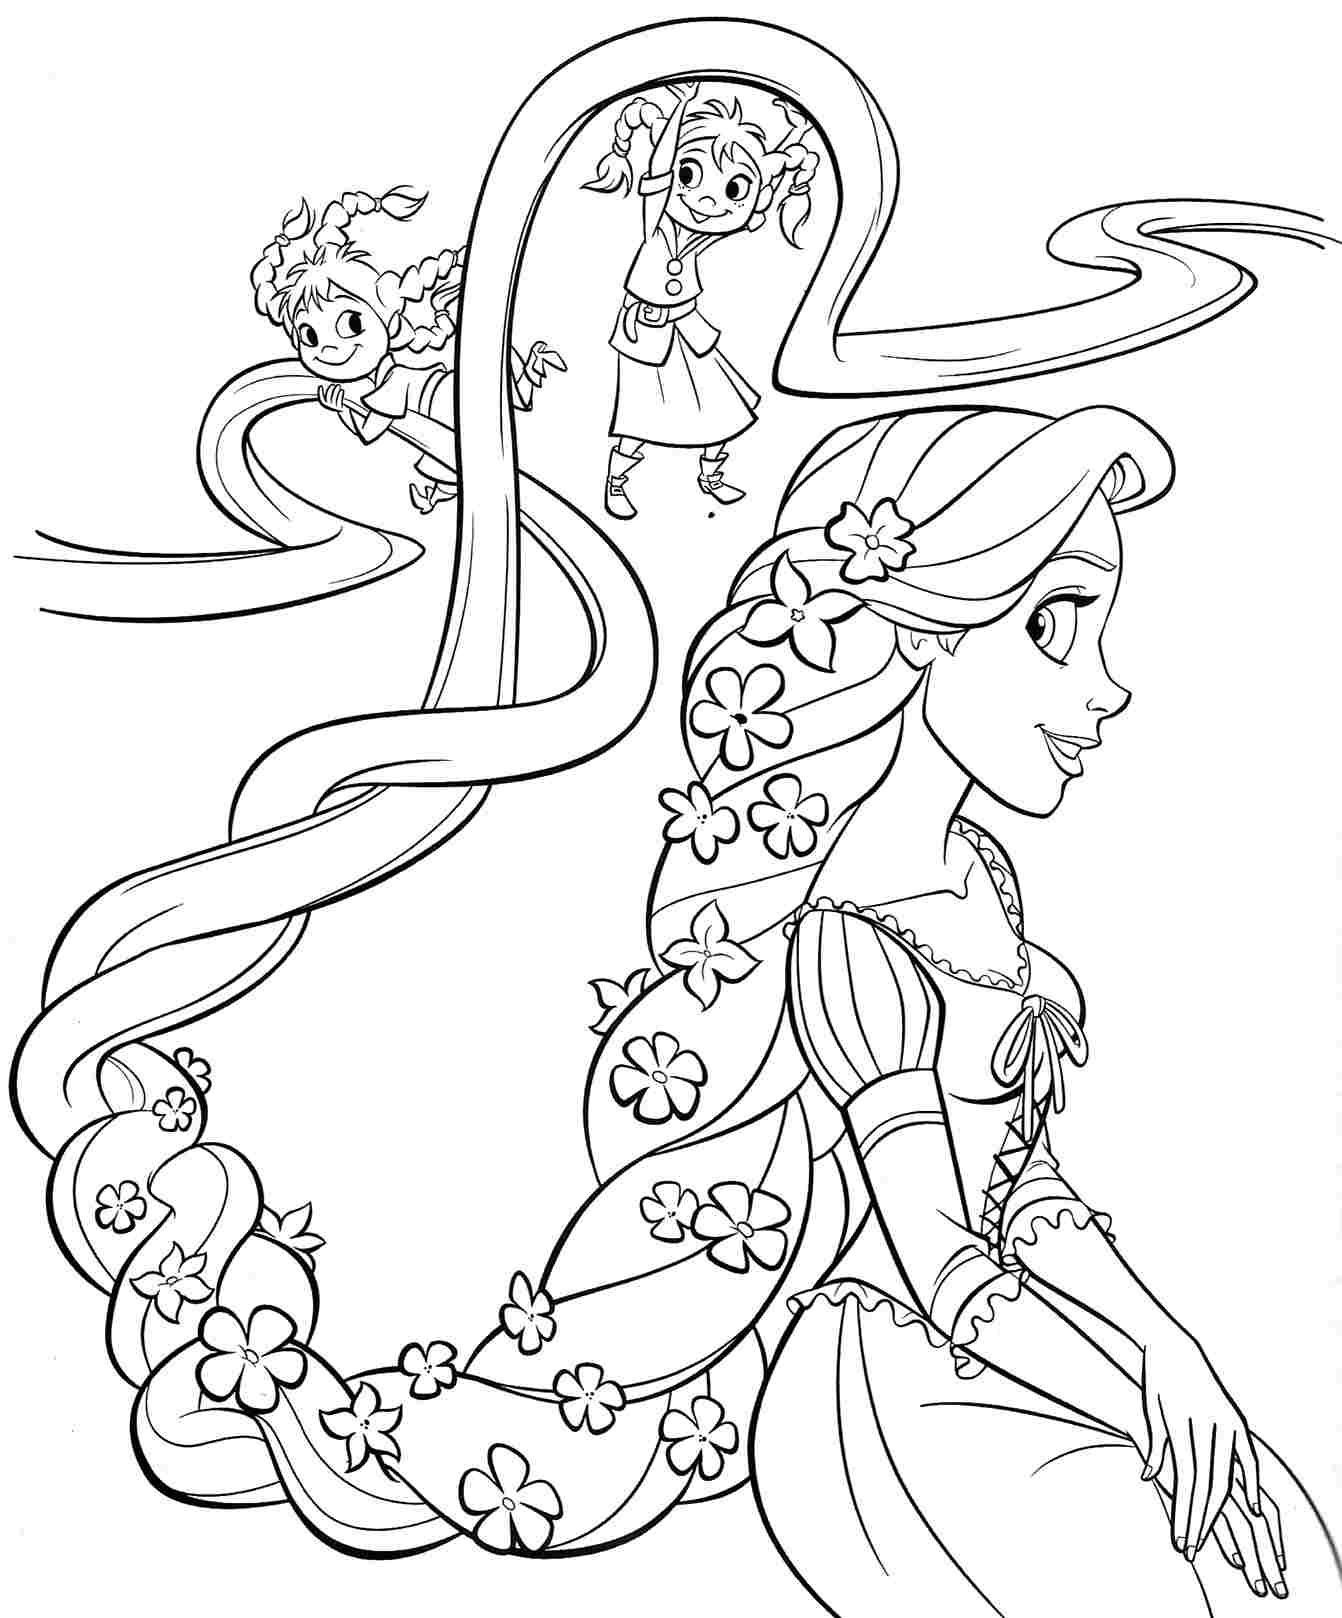 Tangled Coloring Pages For Girls  printable free disney princess rapunzel coloring sheets